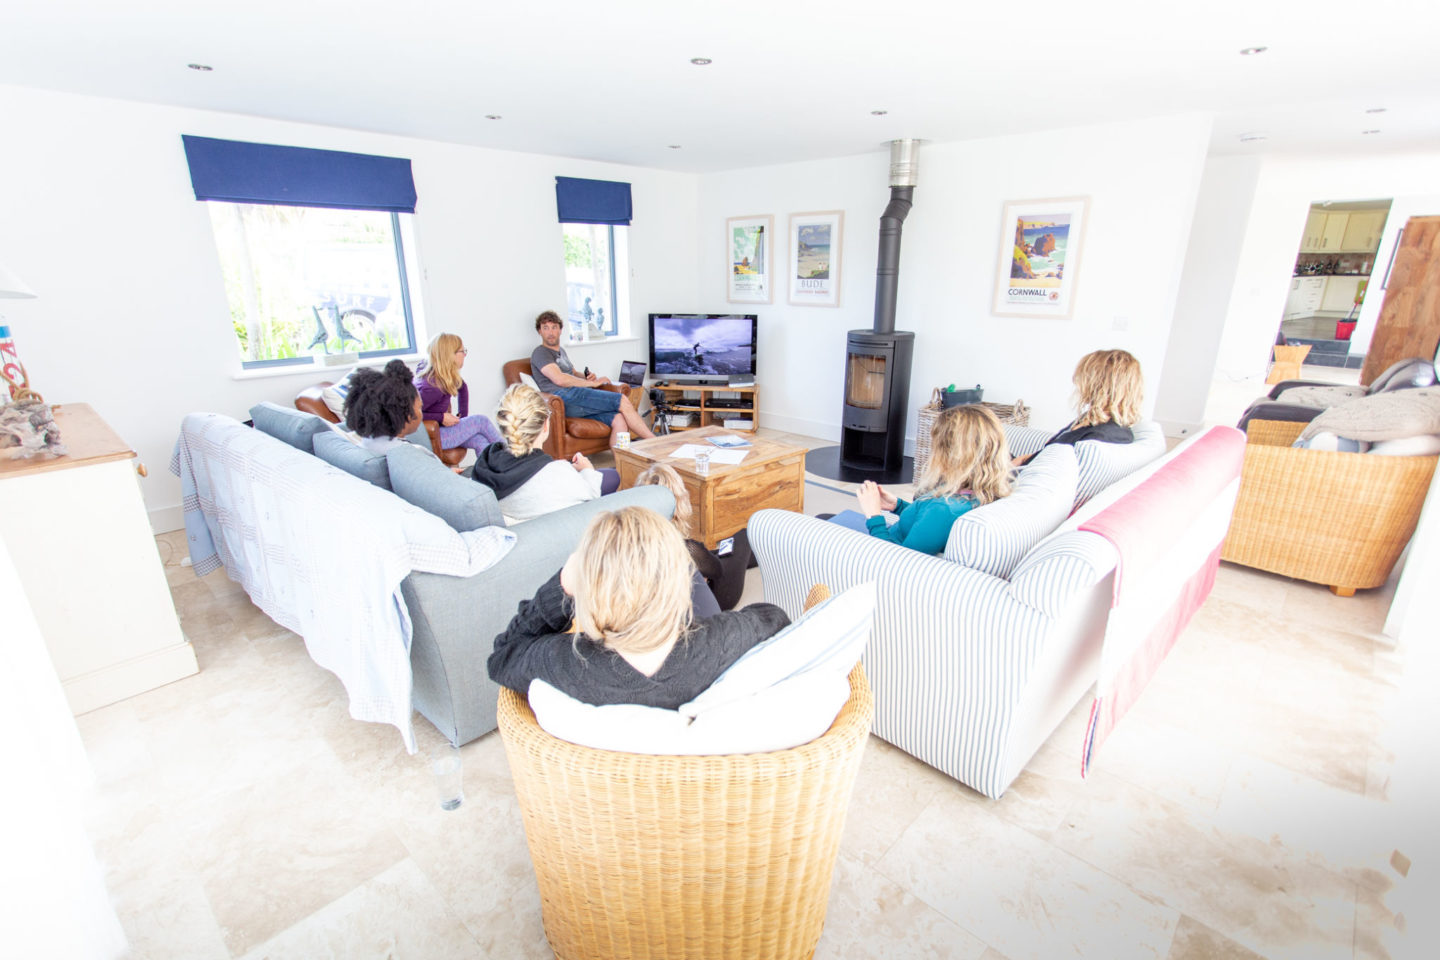 group of people sat on sofas in a living room looking at feedback from a surf lesson on the tv